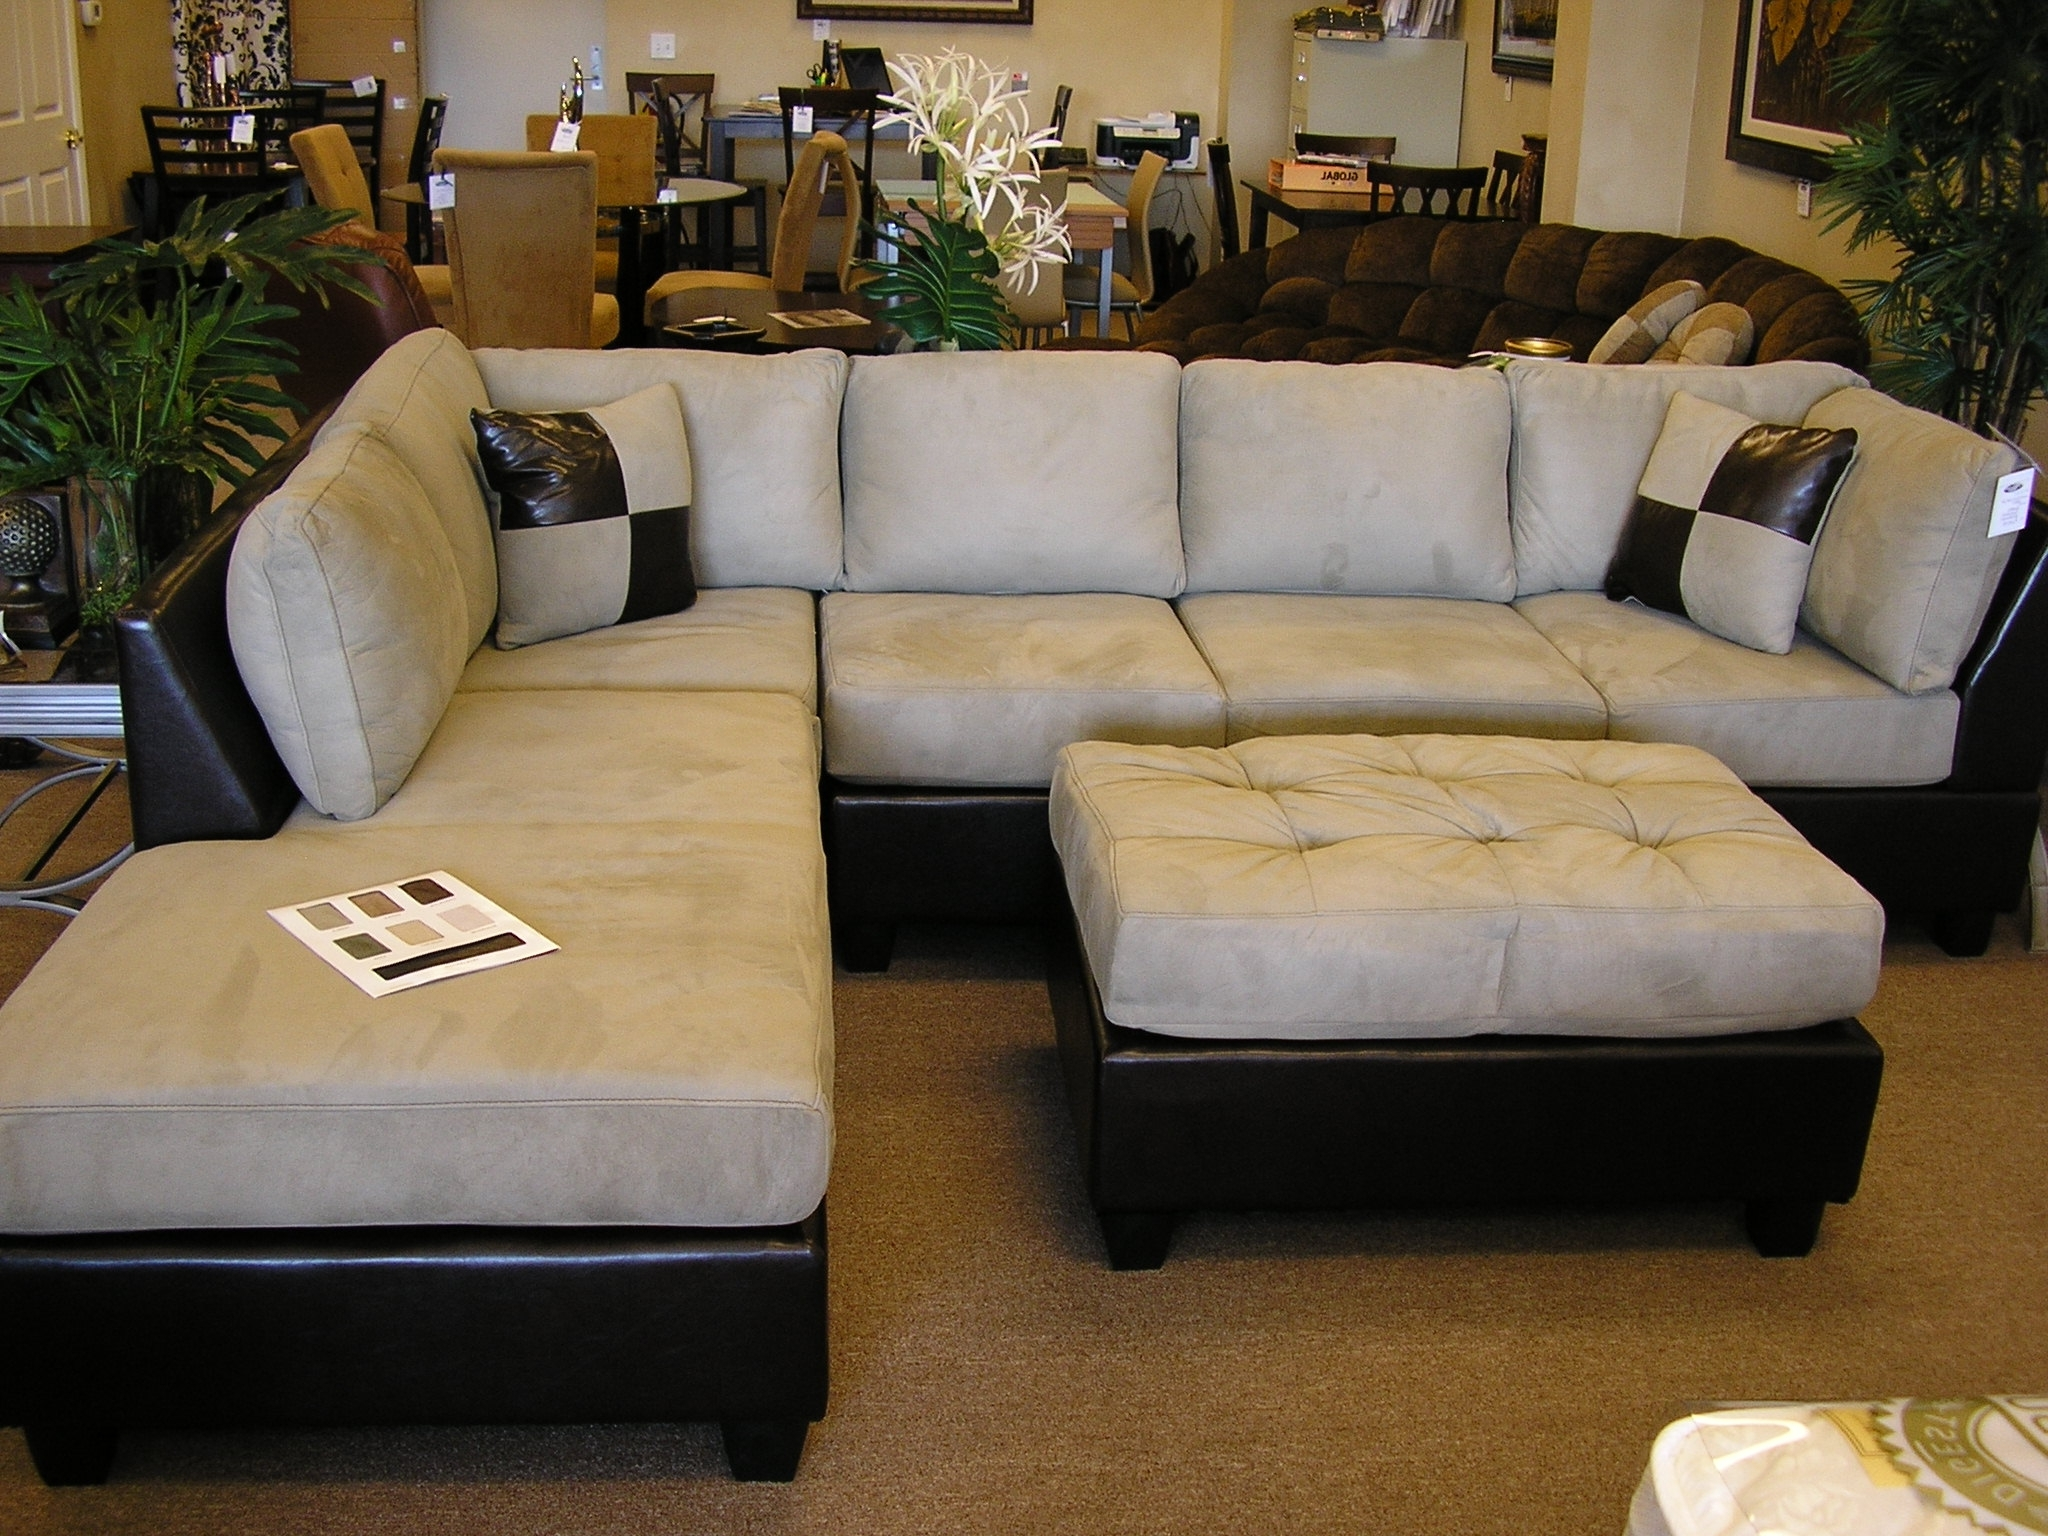 Newest Cheap Sectionals With Ottoman With Regard To Furniture : Sectional Chaise Lounge Sofa Double Along With (View 1 of 20)